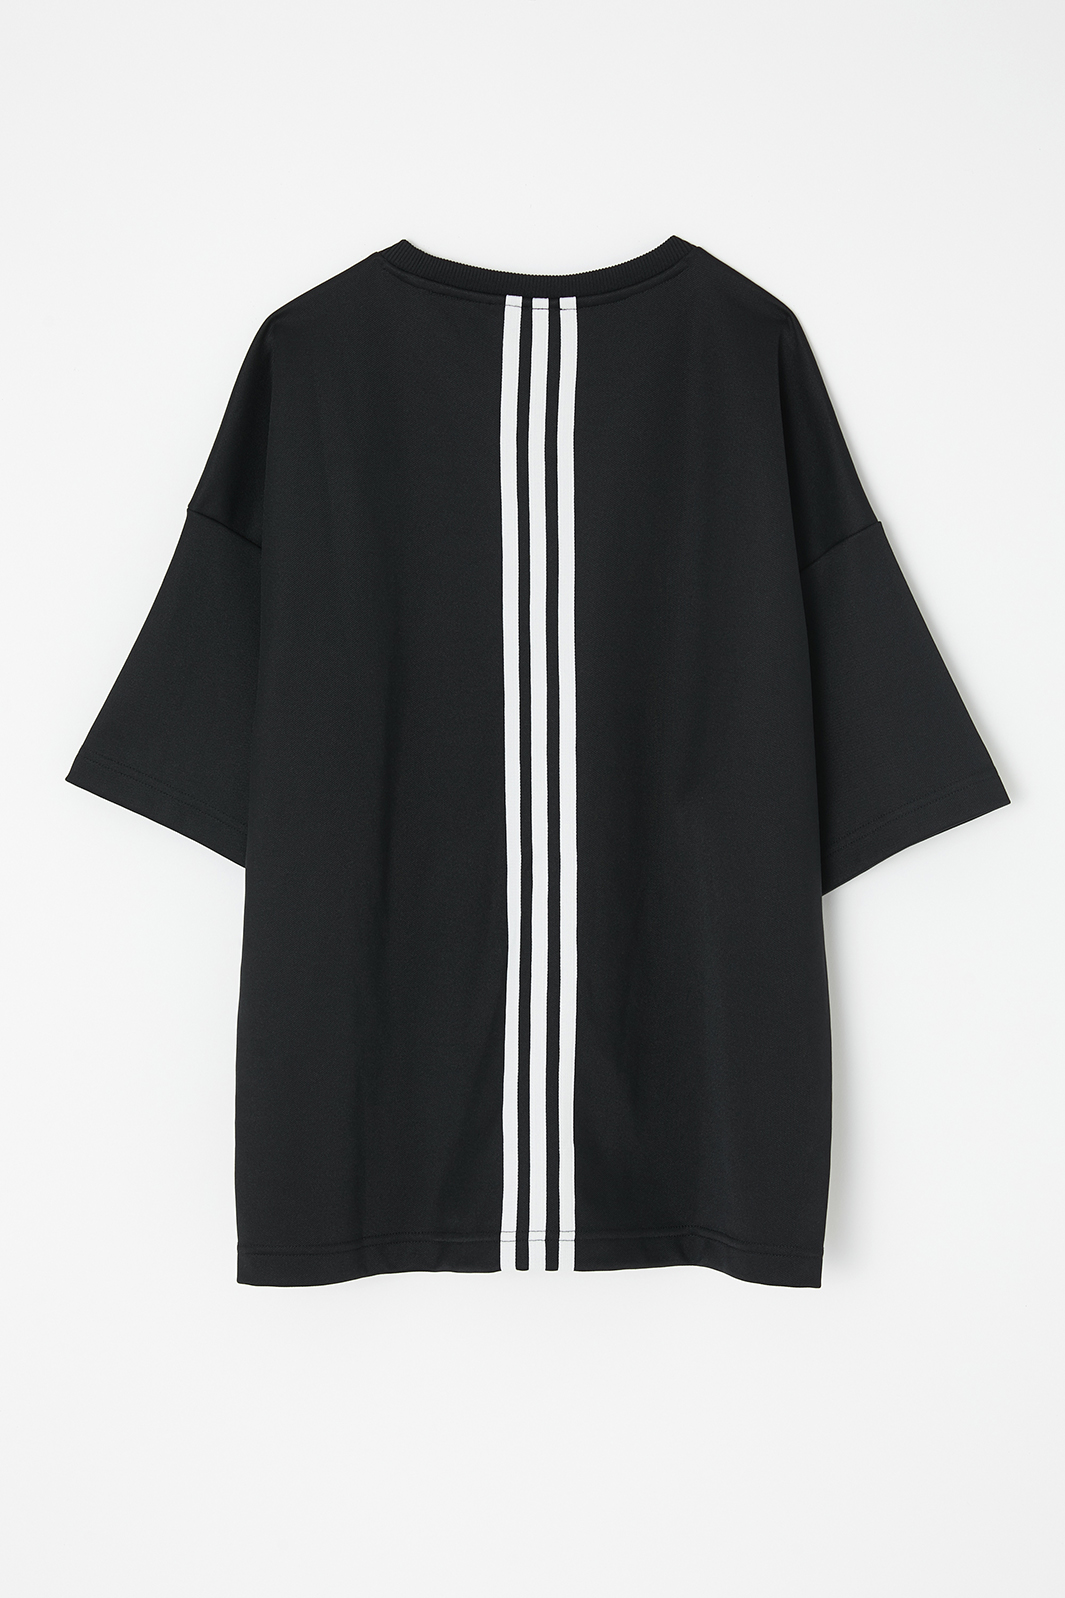 「adidas & MOUSSY」W CLS SS T MSY(提供写真)